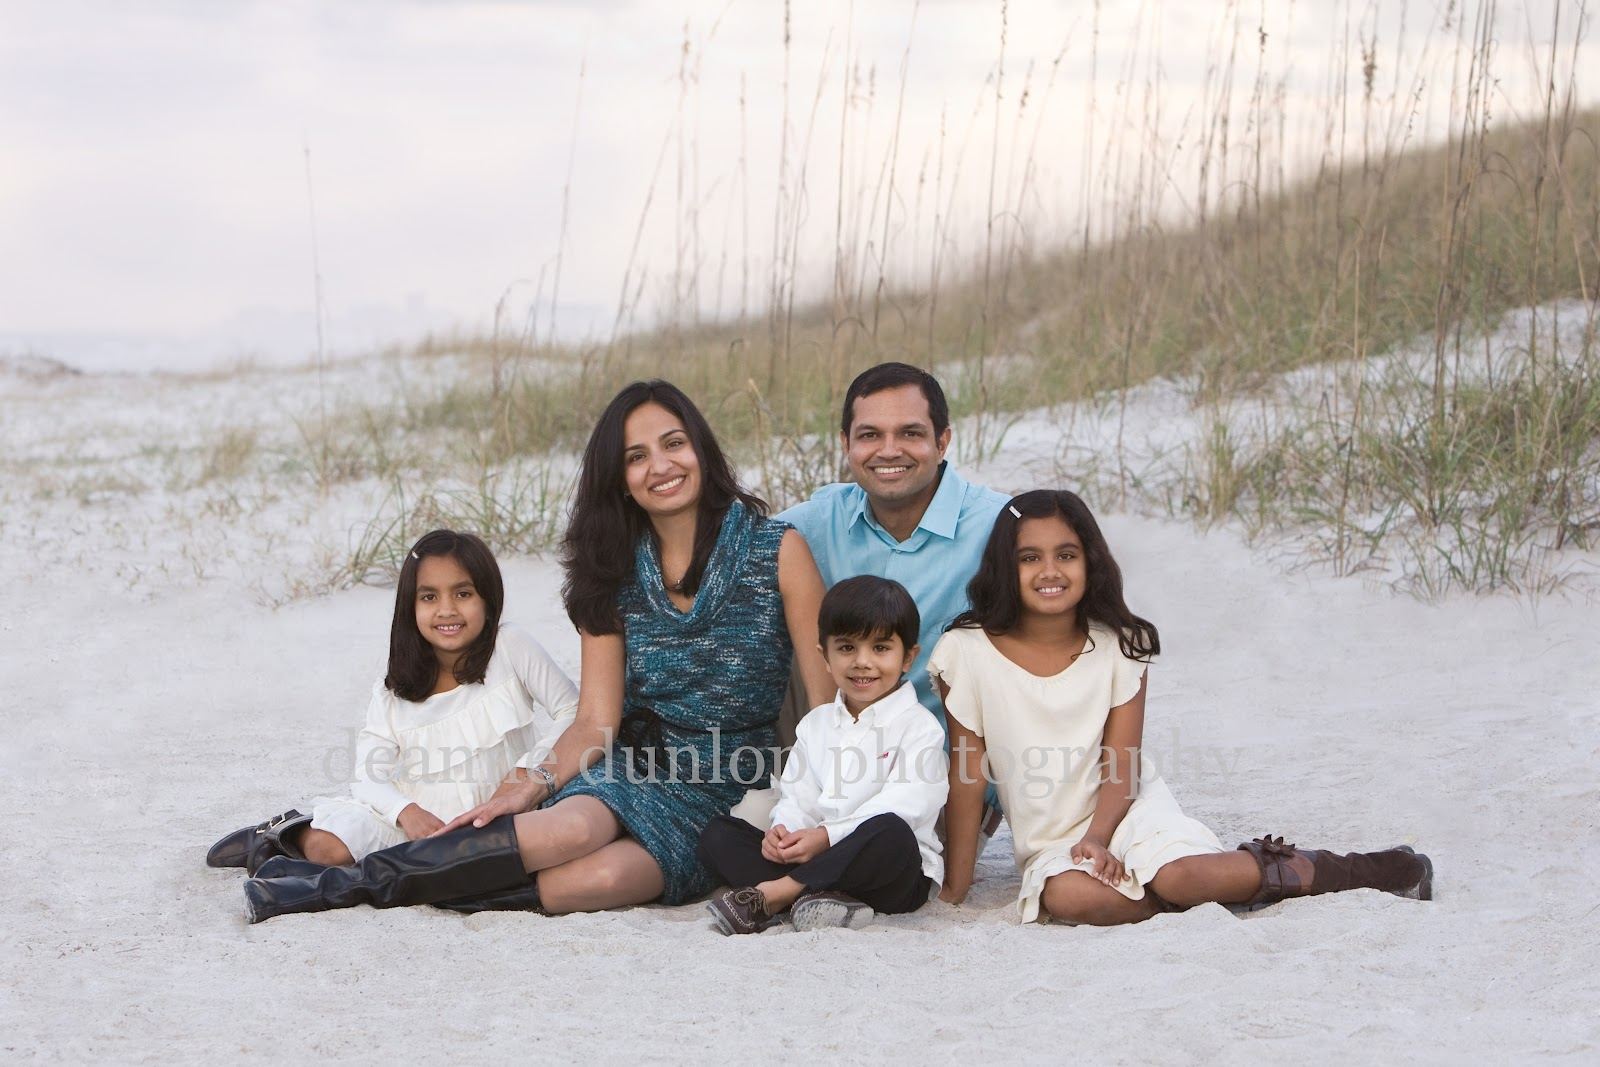 winter family beach portraits photography to celebrate life